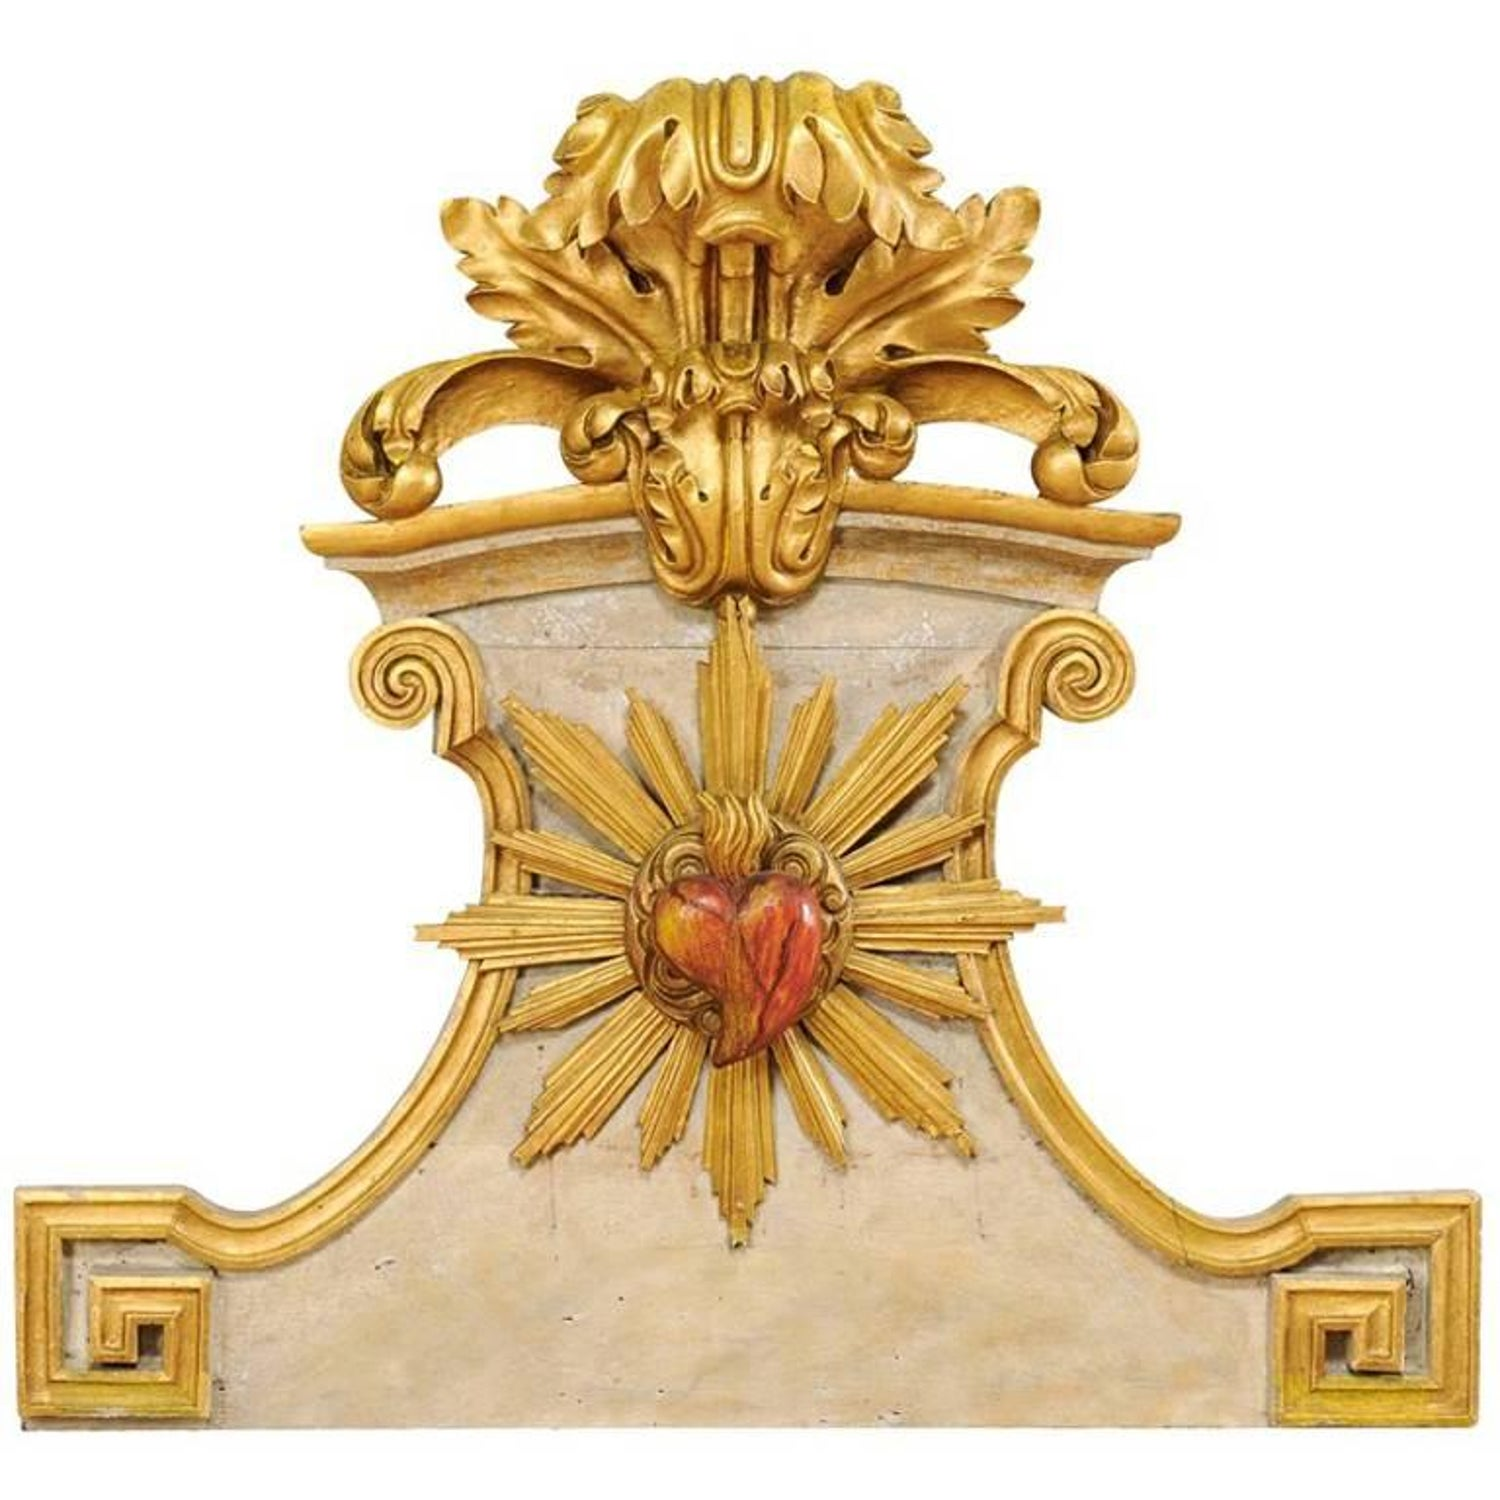 Carved Wood Wall Plaques - 188 For Sale on 1stdibs